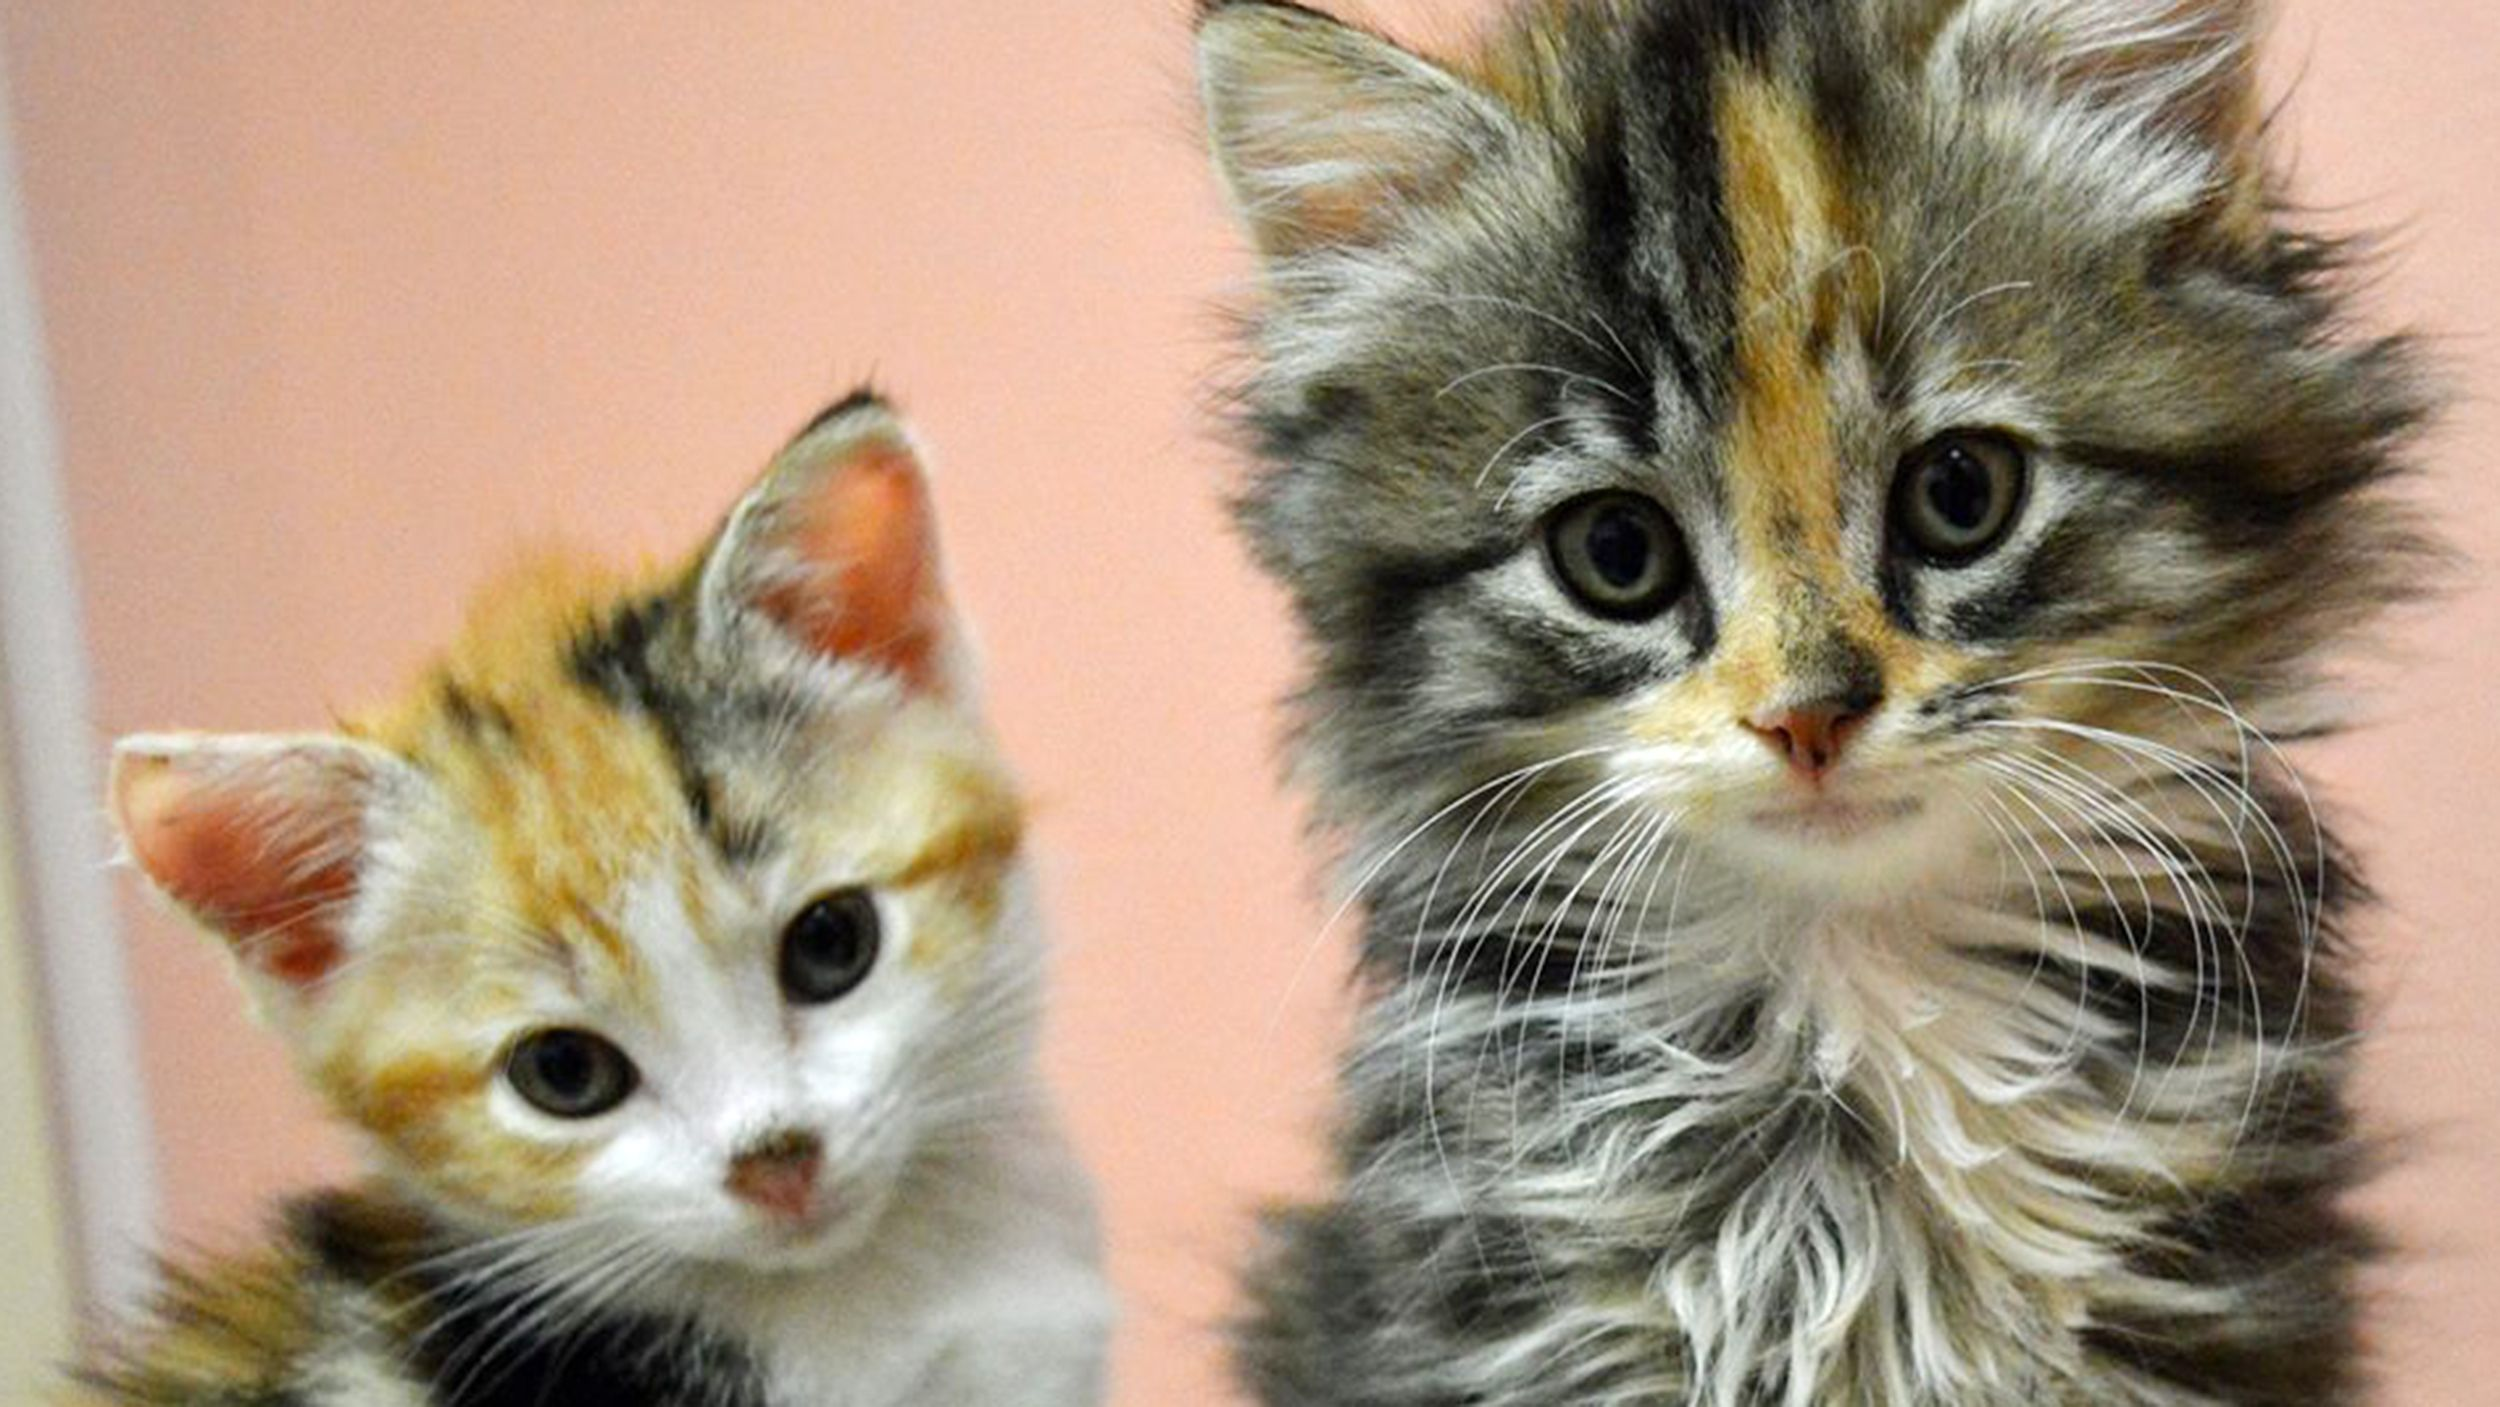 Want to be a kitten cuddler? 6 ways to help animal